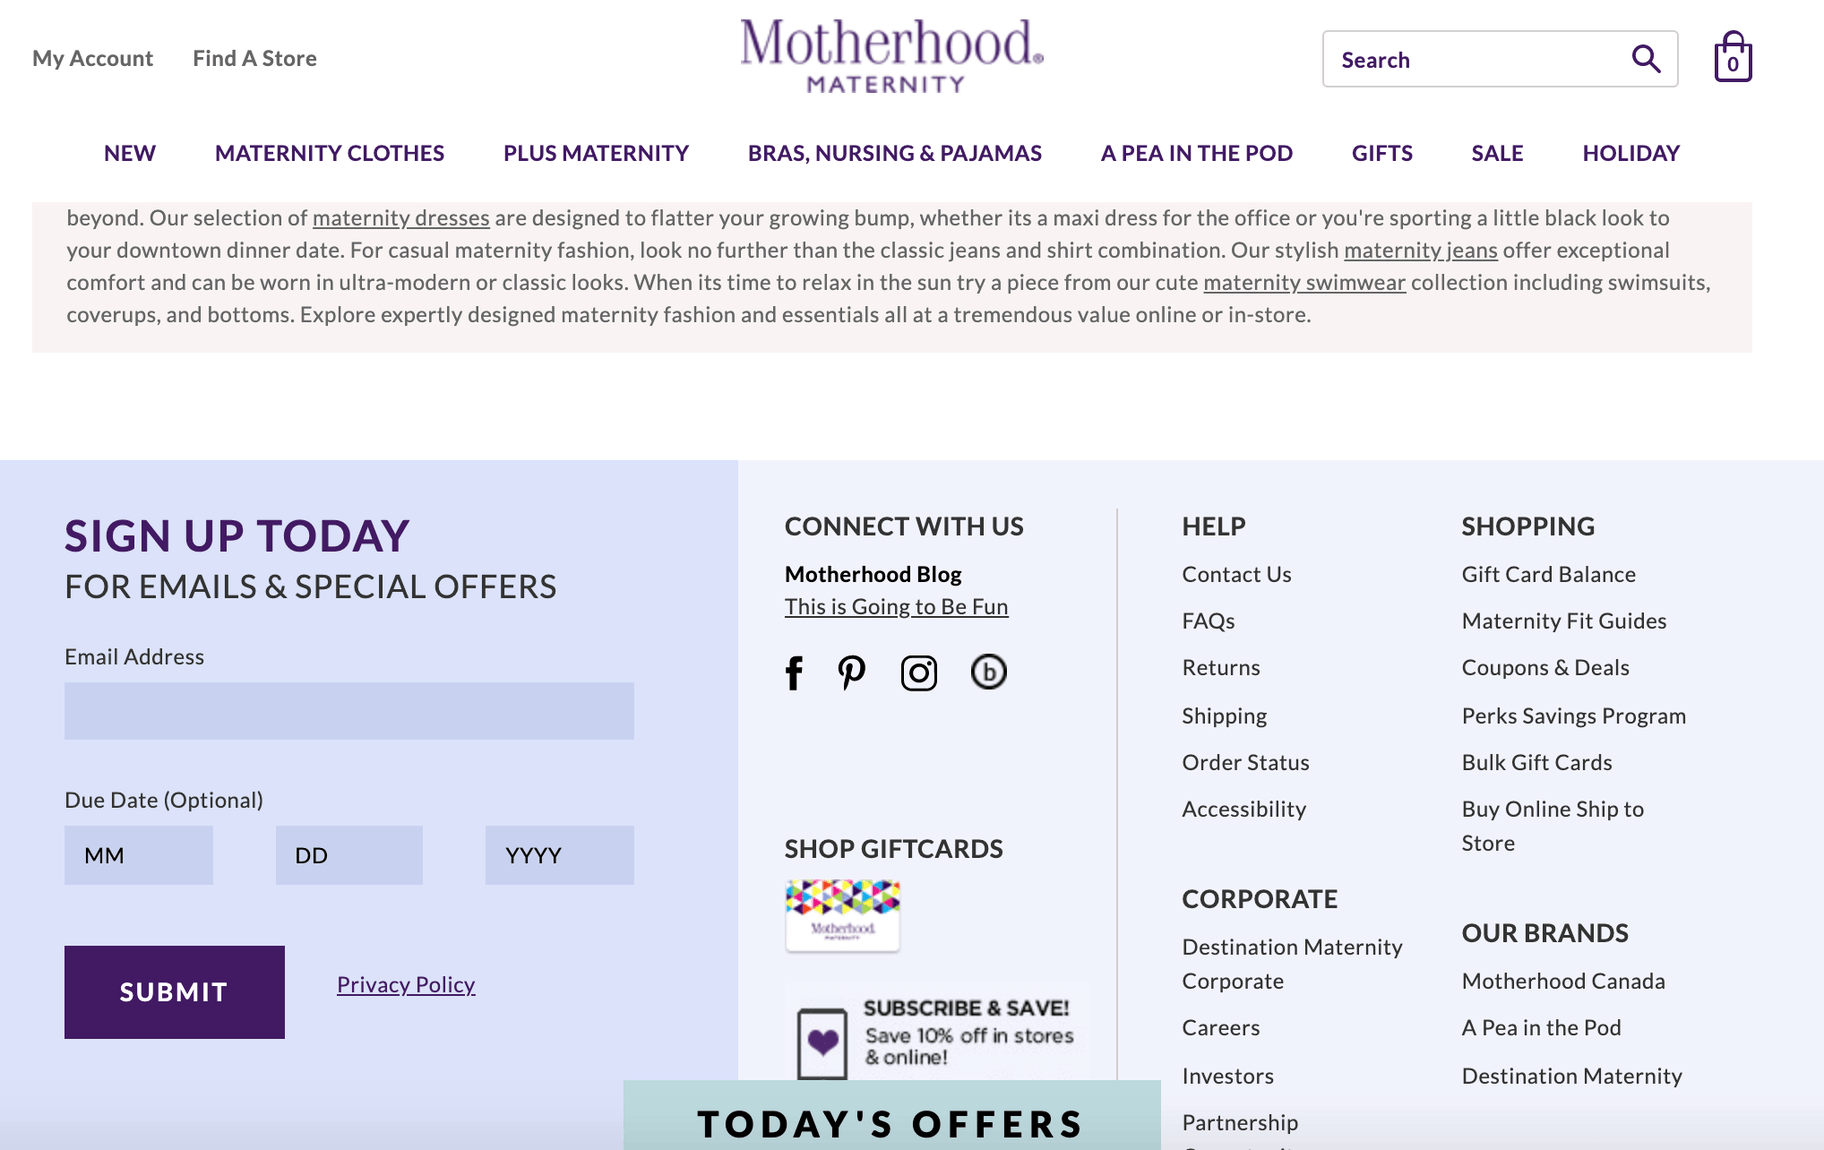 motherhood maternity email